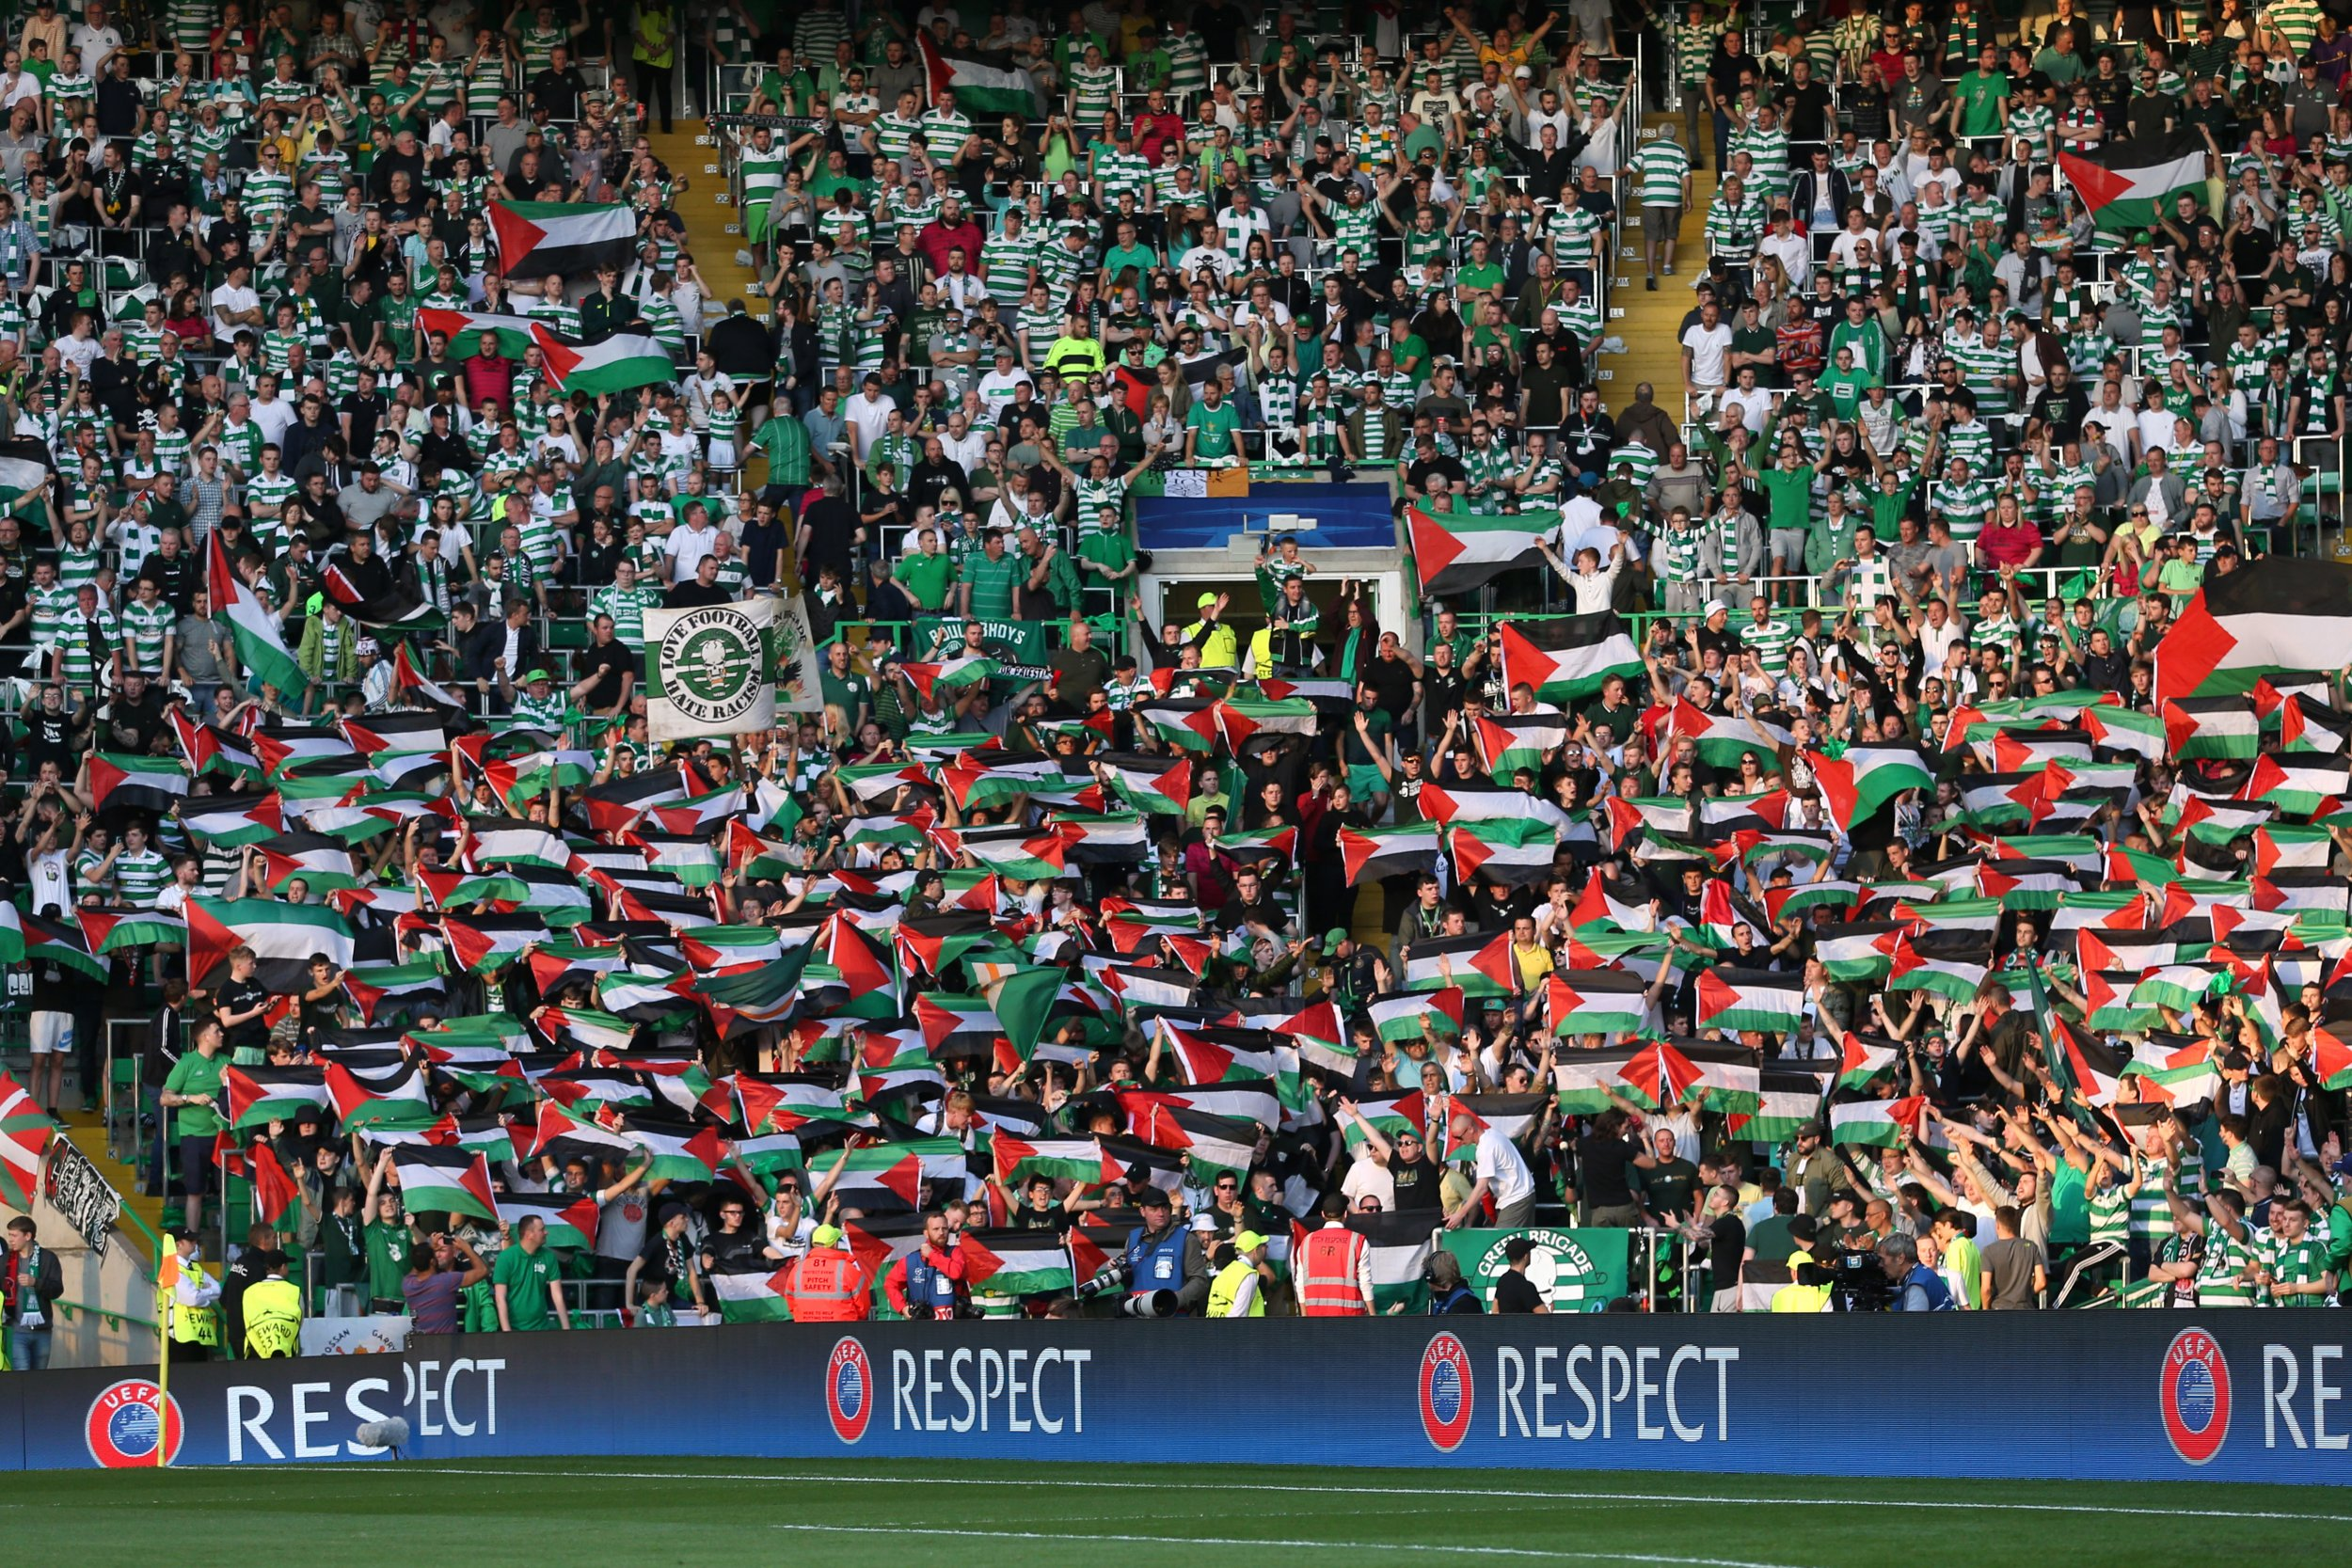 Celtic Fans hold up flags against Hapoel Beer Sheva